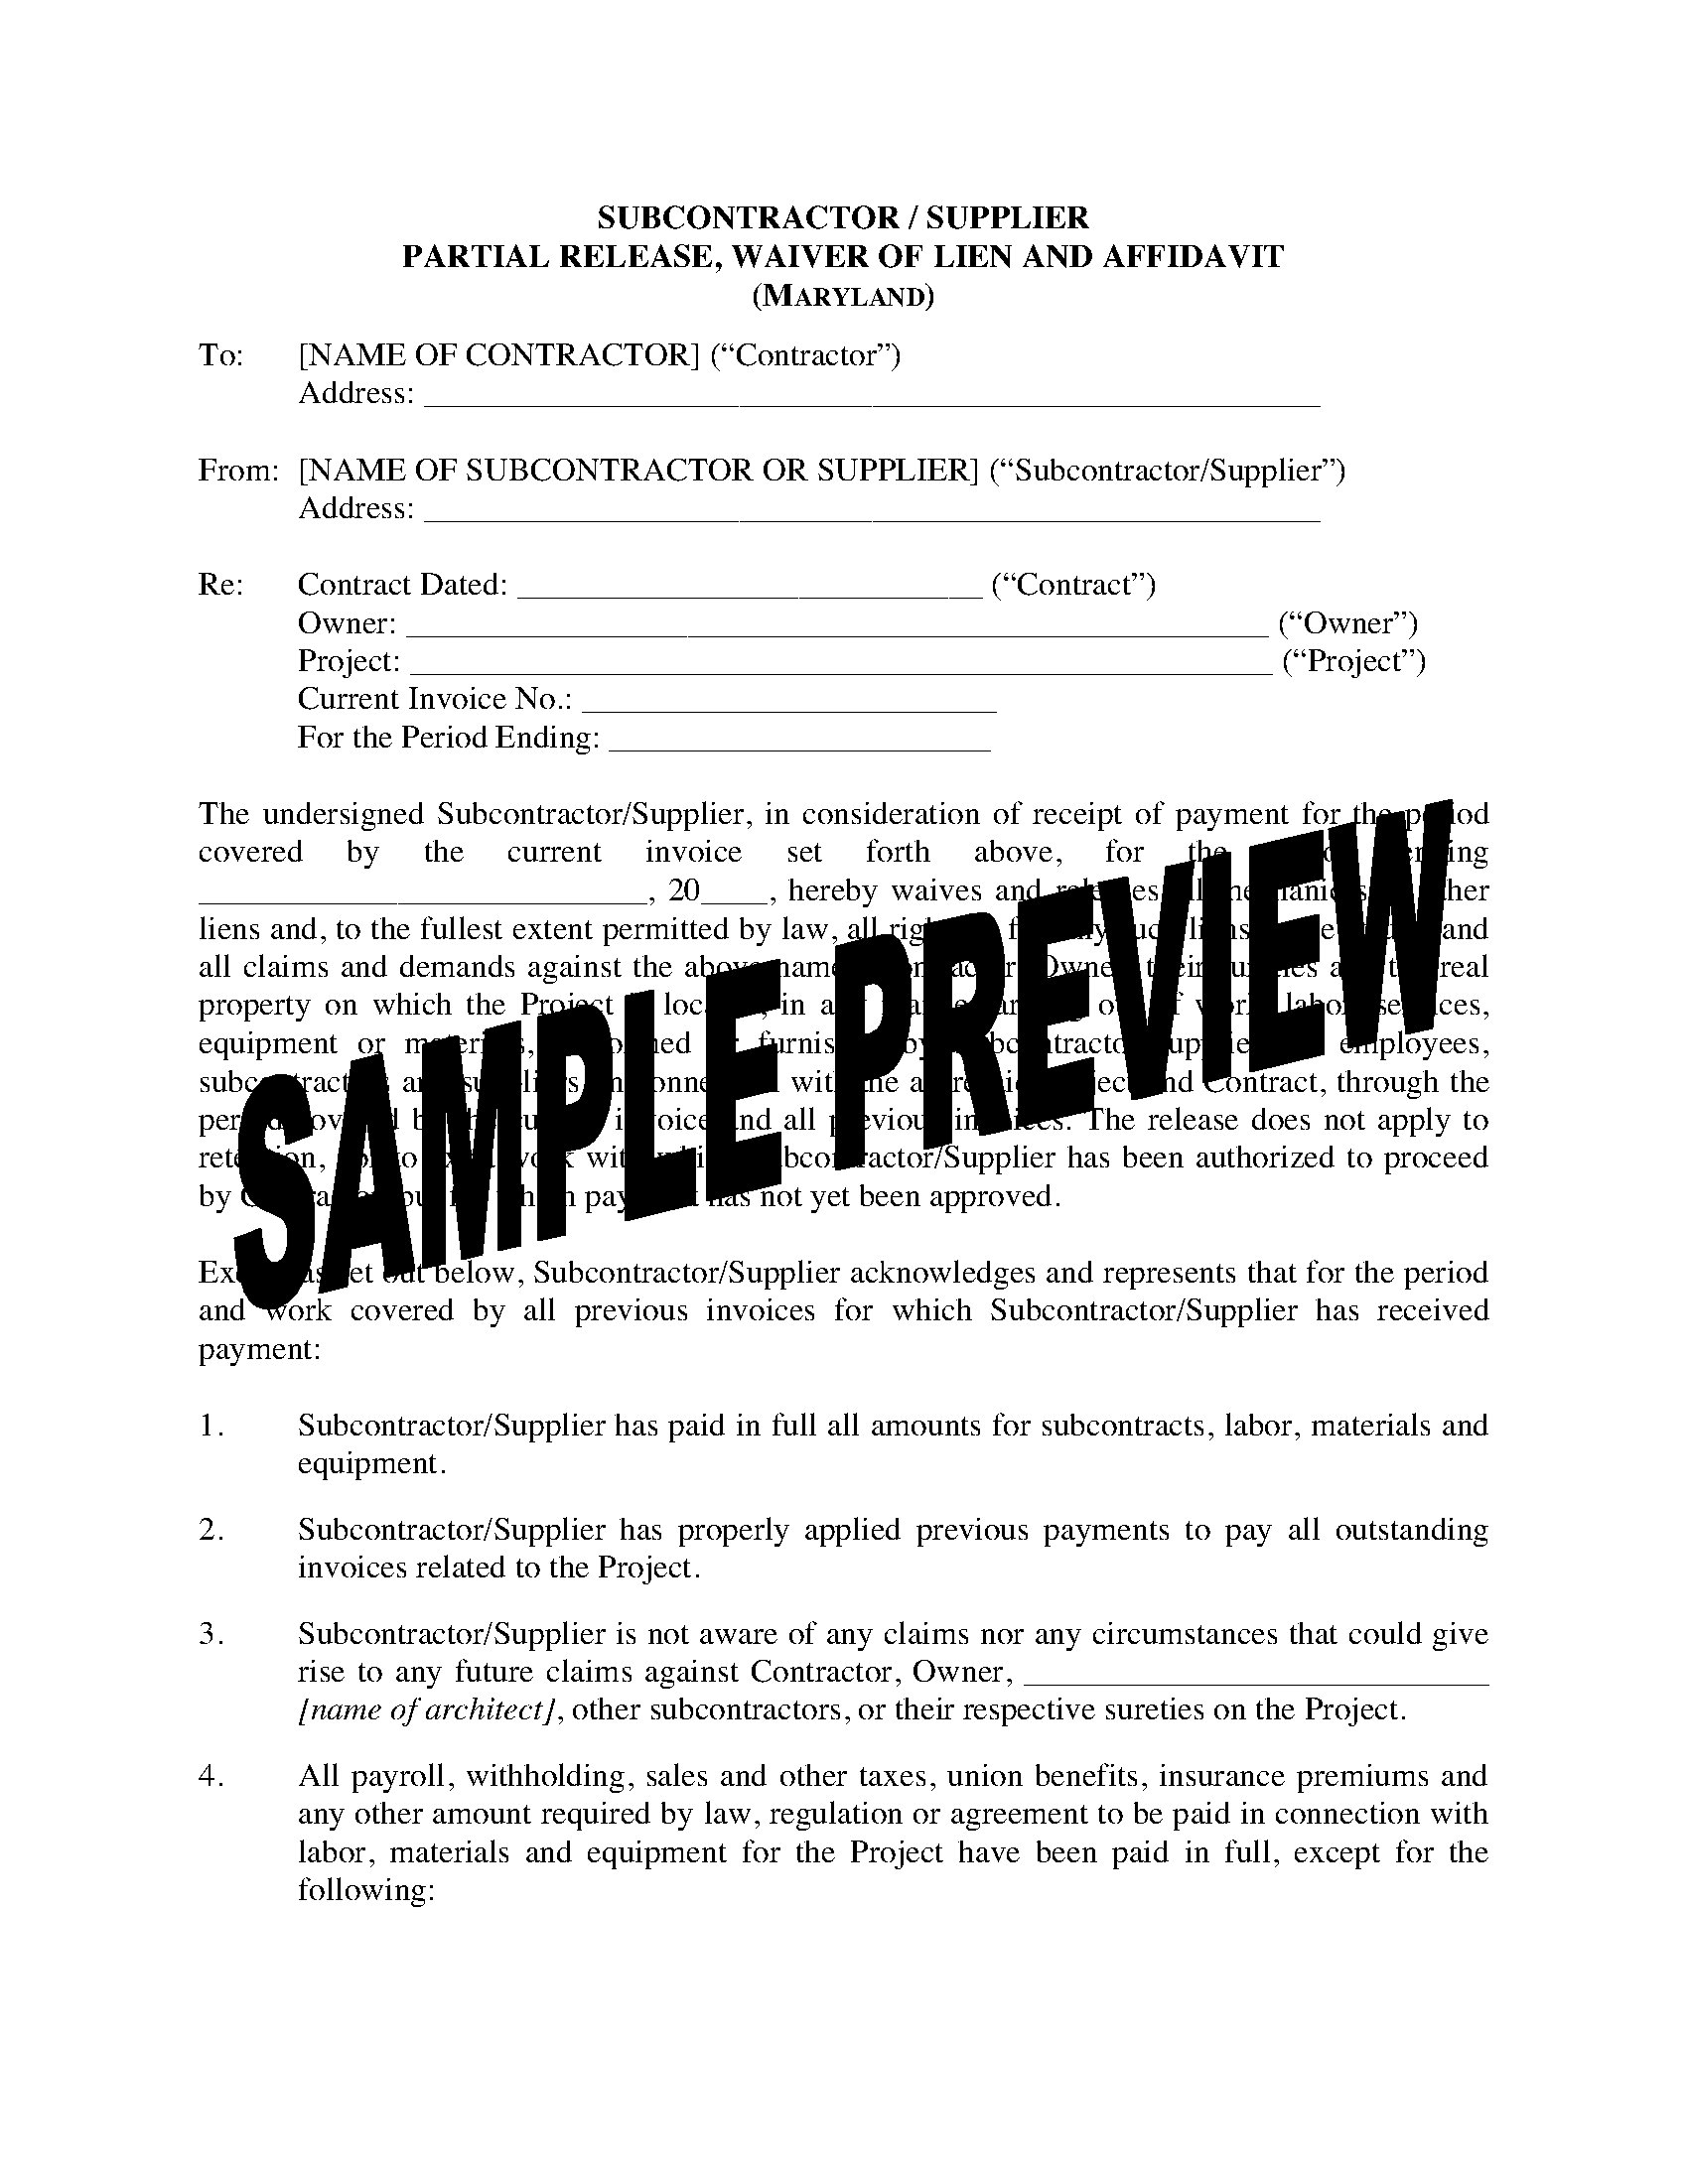 waiver forms templates